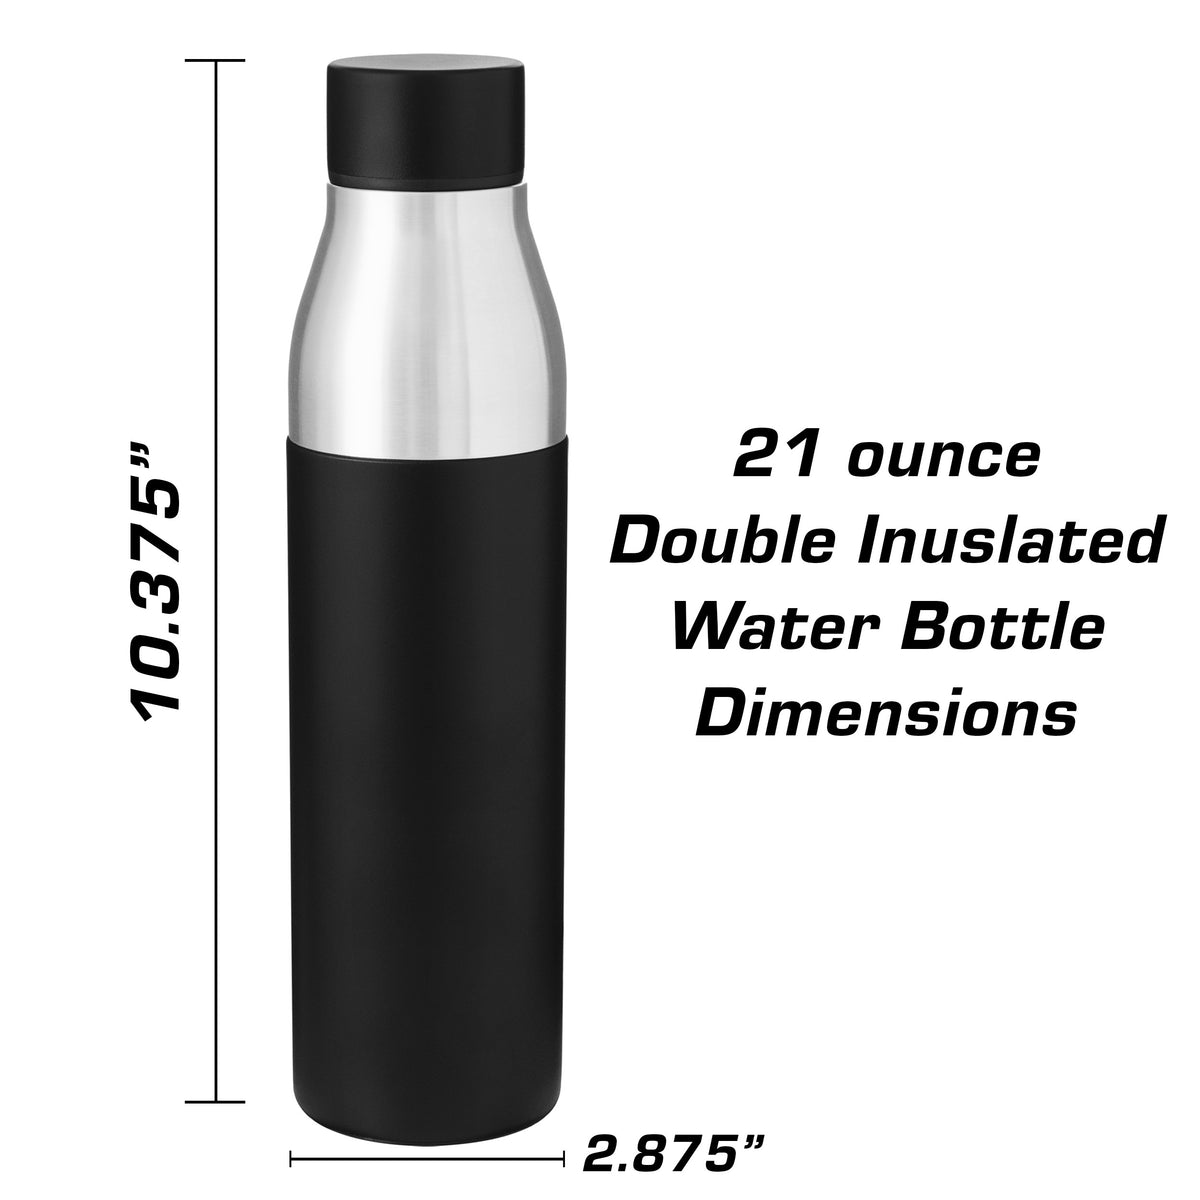 Porsche 550 Spyder Insulated Stainless Steel Water Bottle - 21 oz